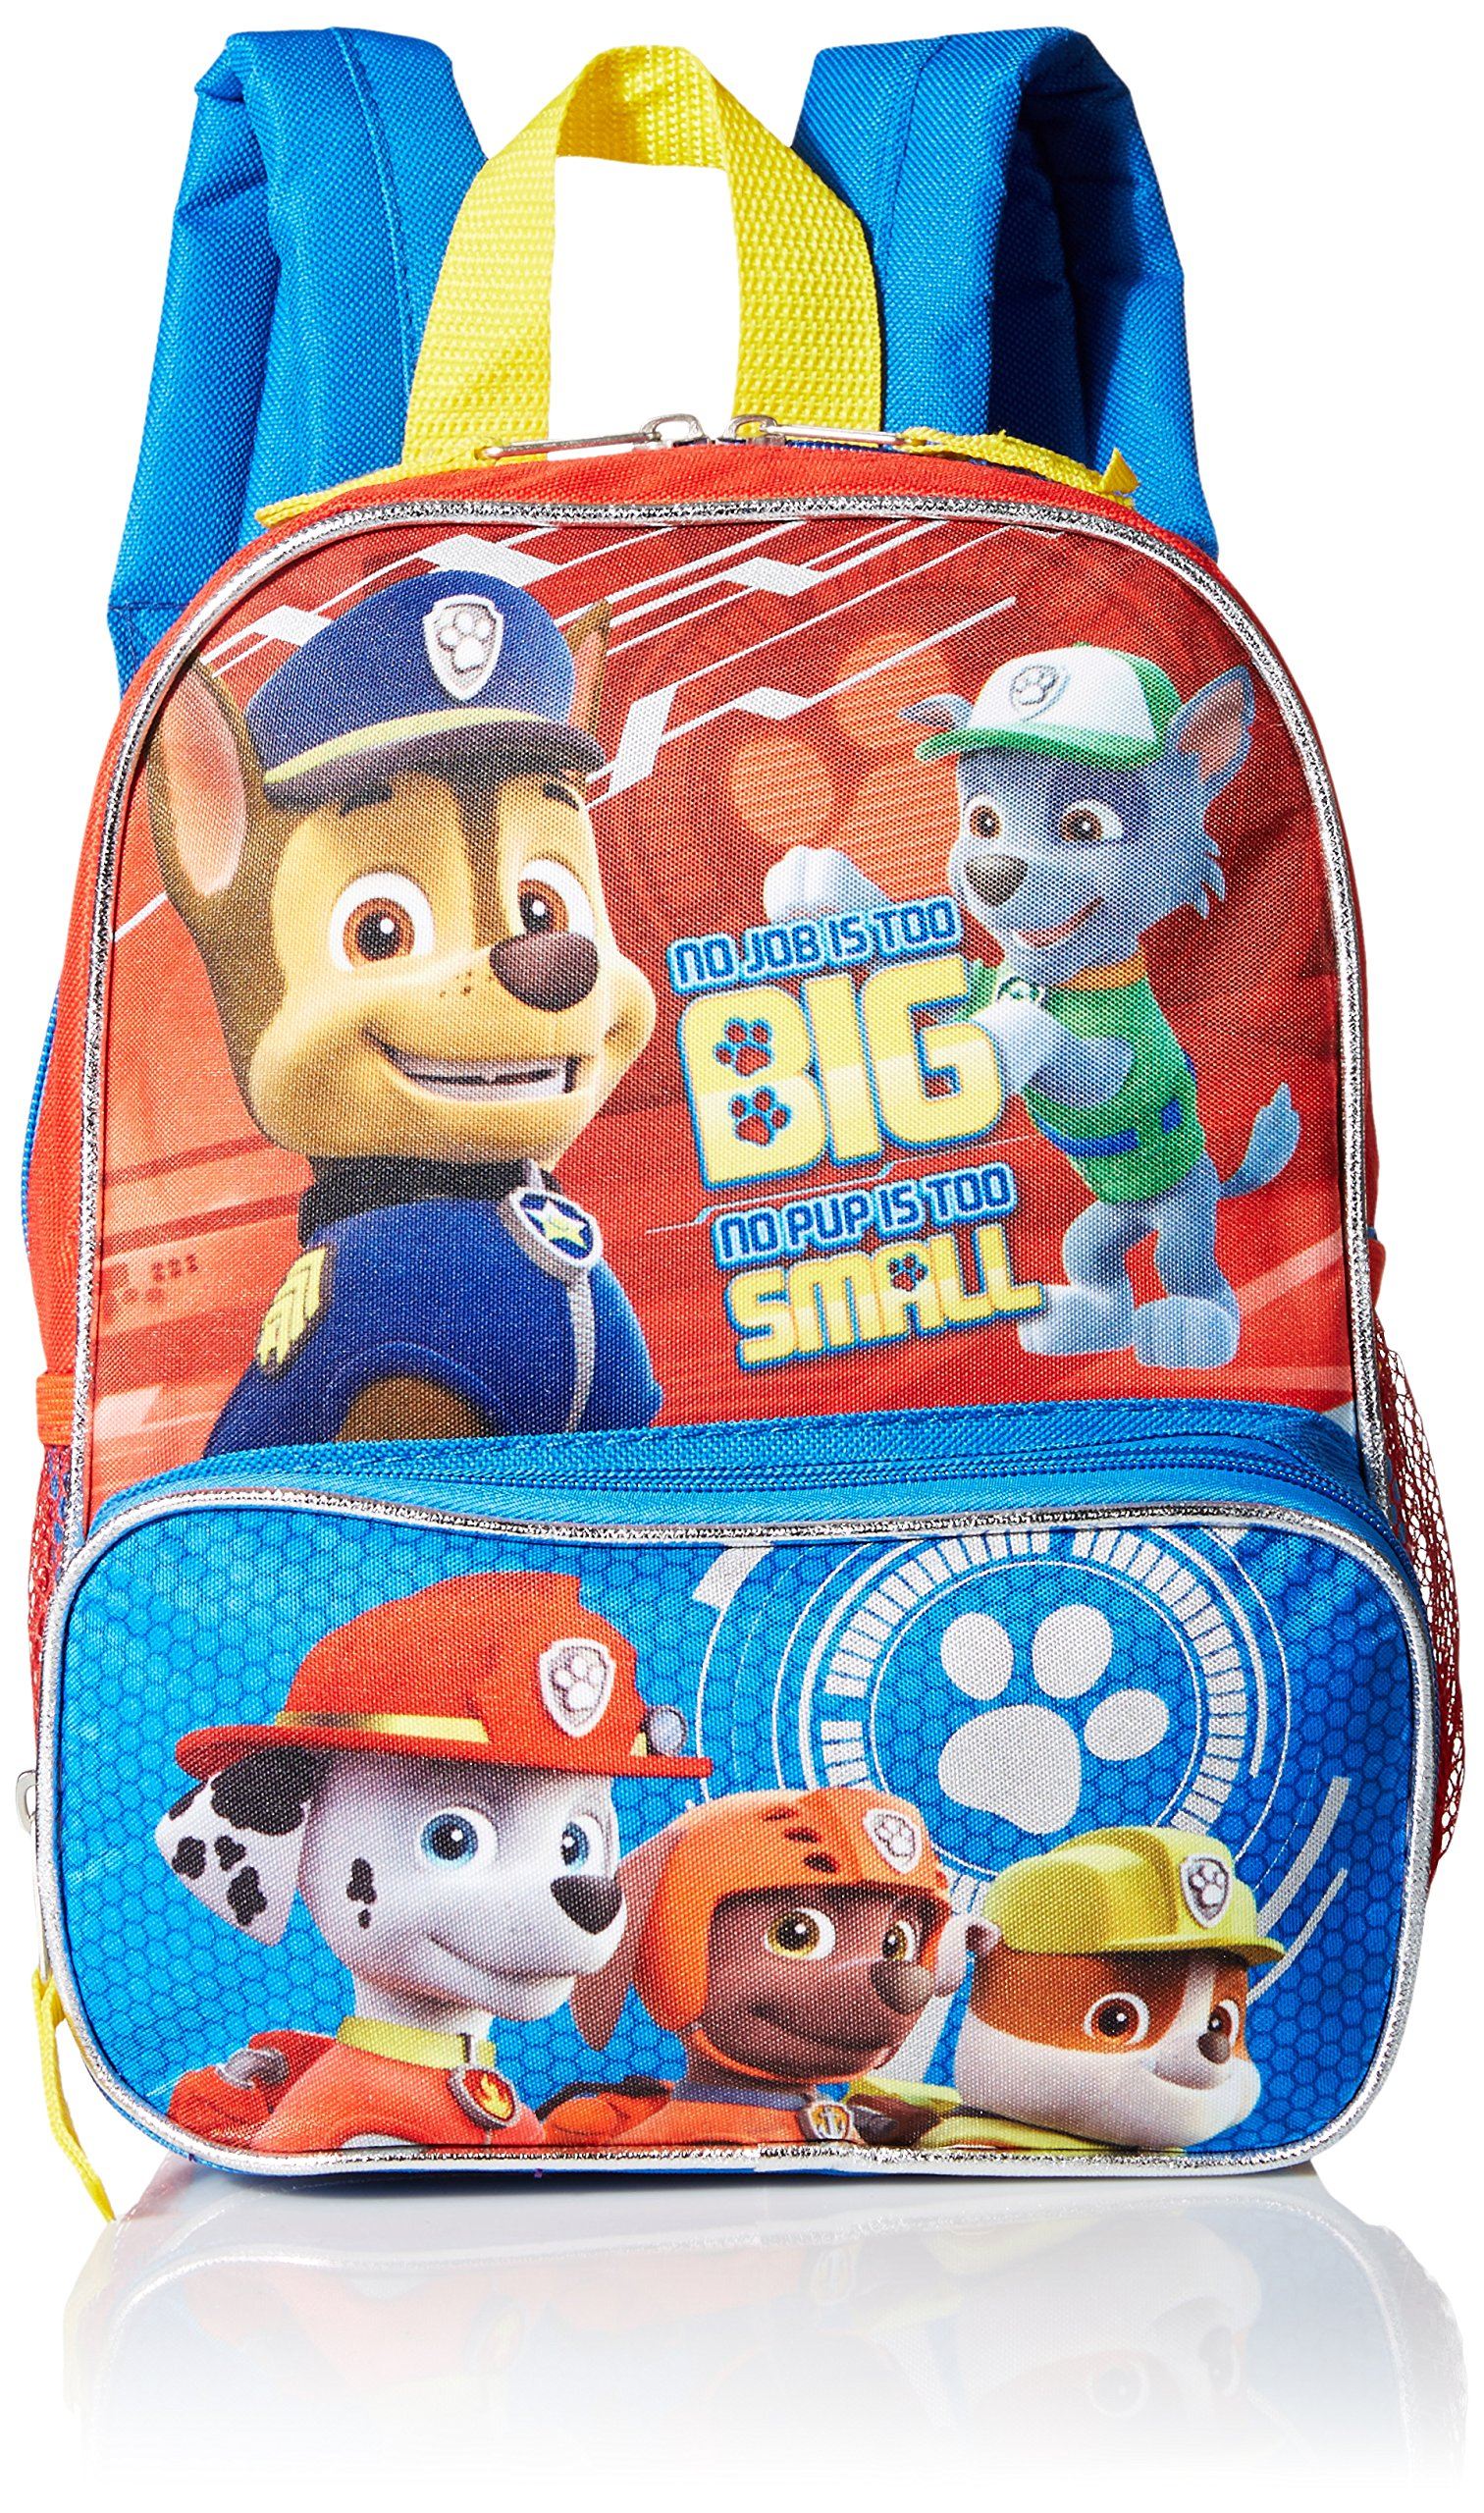 Paw Patrol Boys' 10 Inch Backpack Puppy Job Multi One Size 6